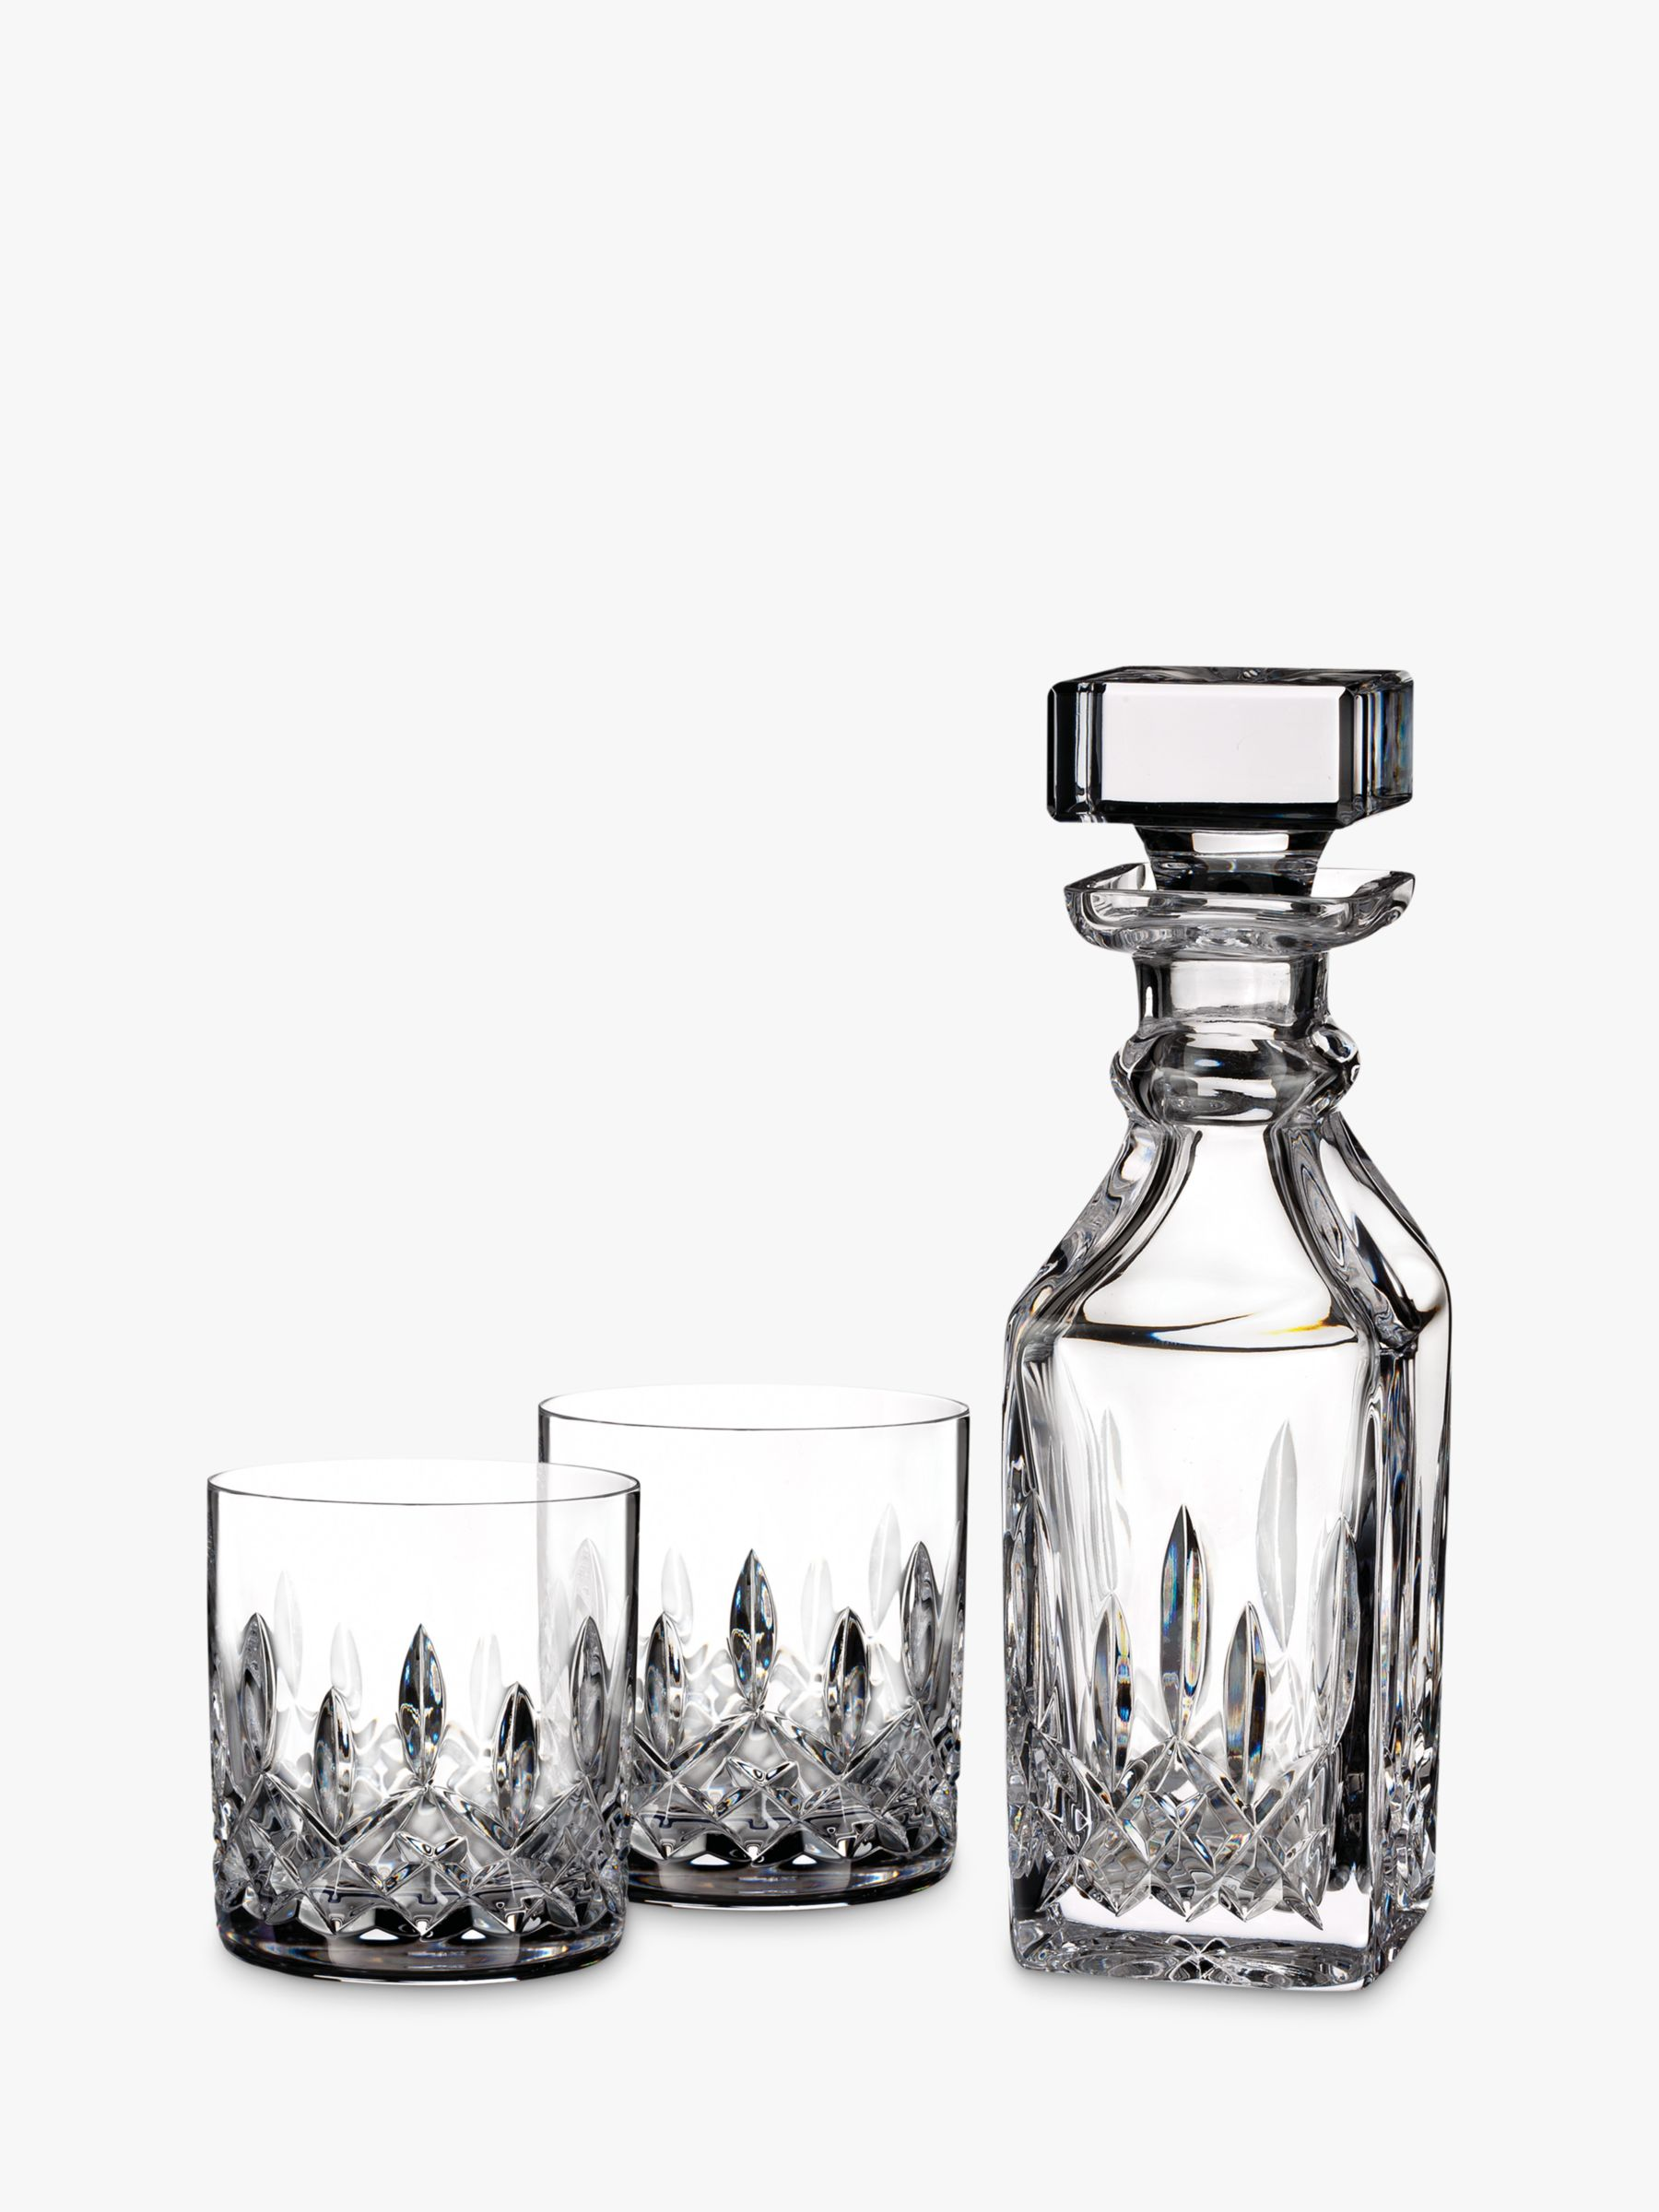 Waterford Waterford Lismore Connoisseur Square Cut Lead Crystal Glass Decanter and Tumblers Set, 3 Pieces